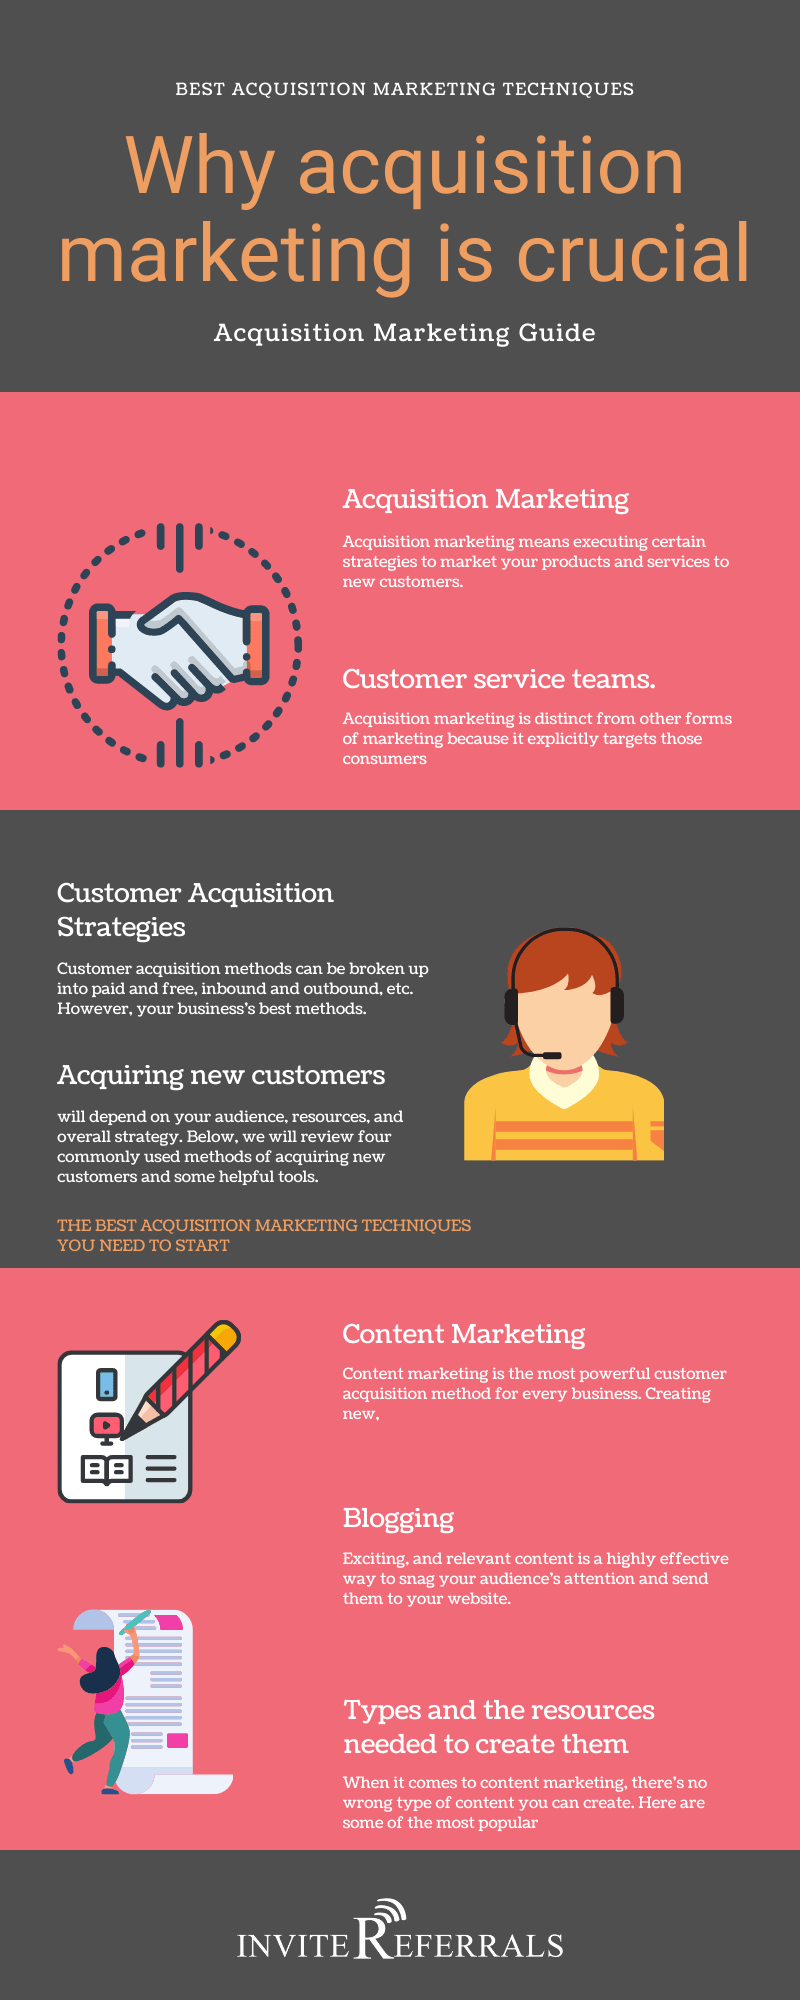 Acquisition marketing infographic.